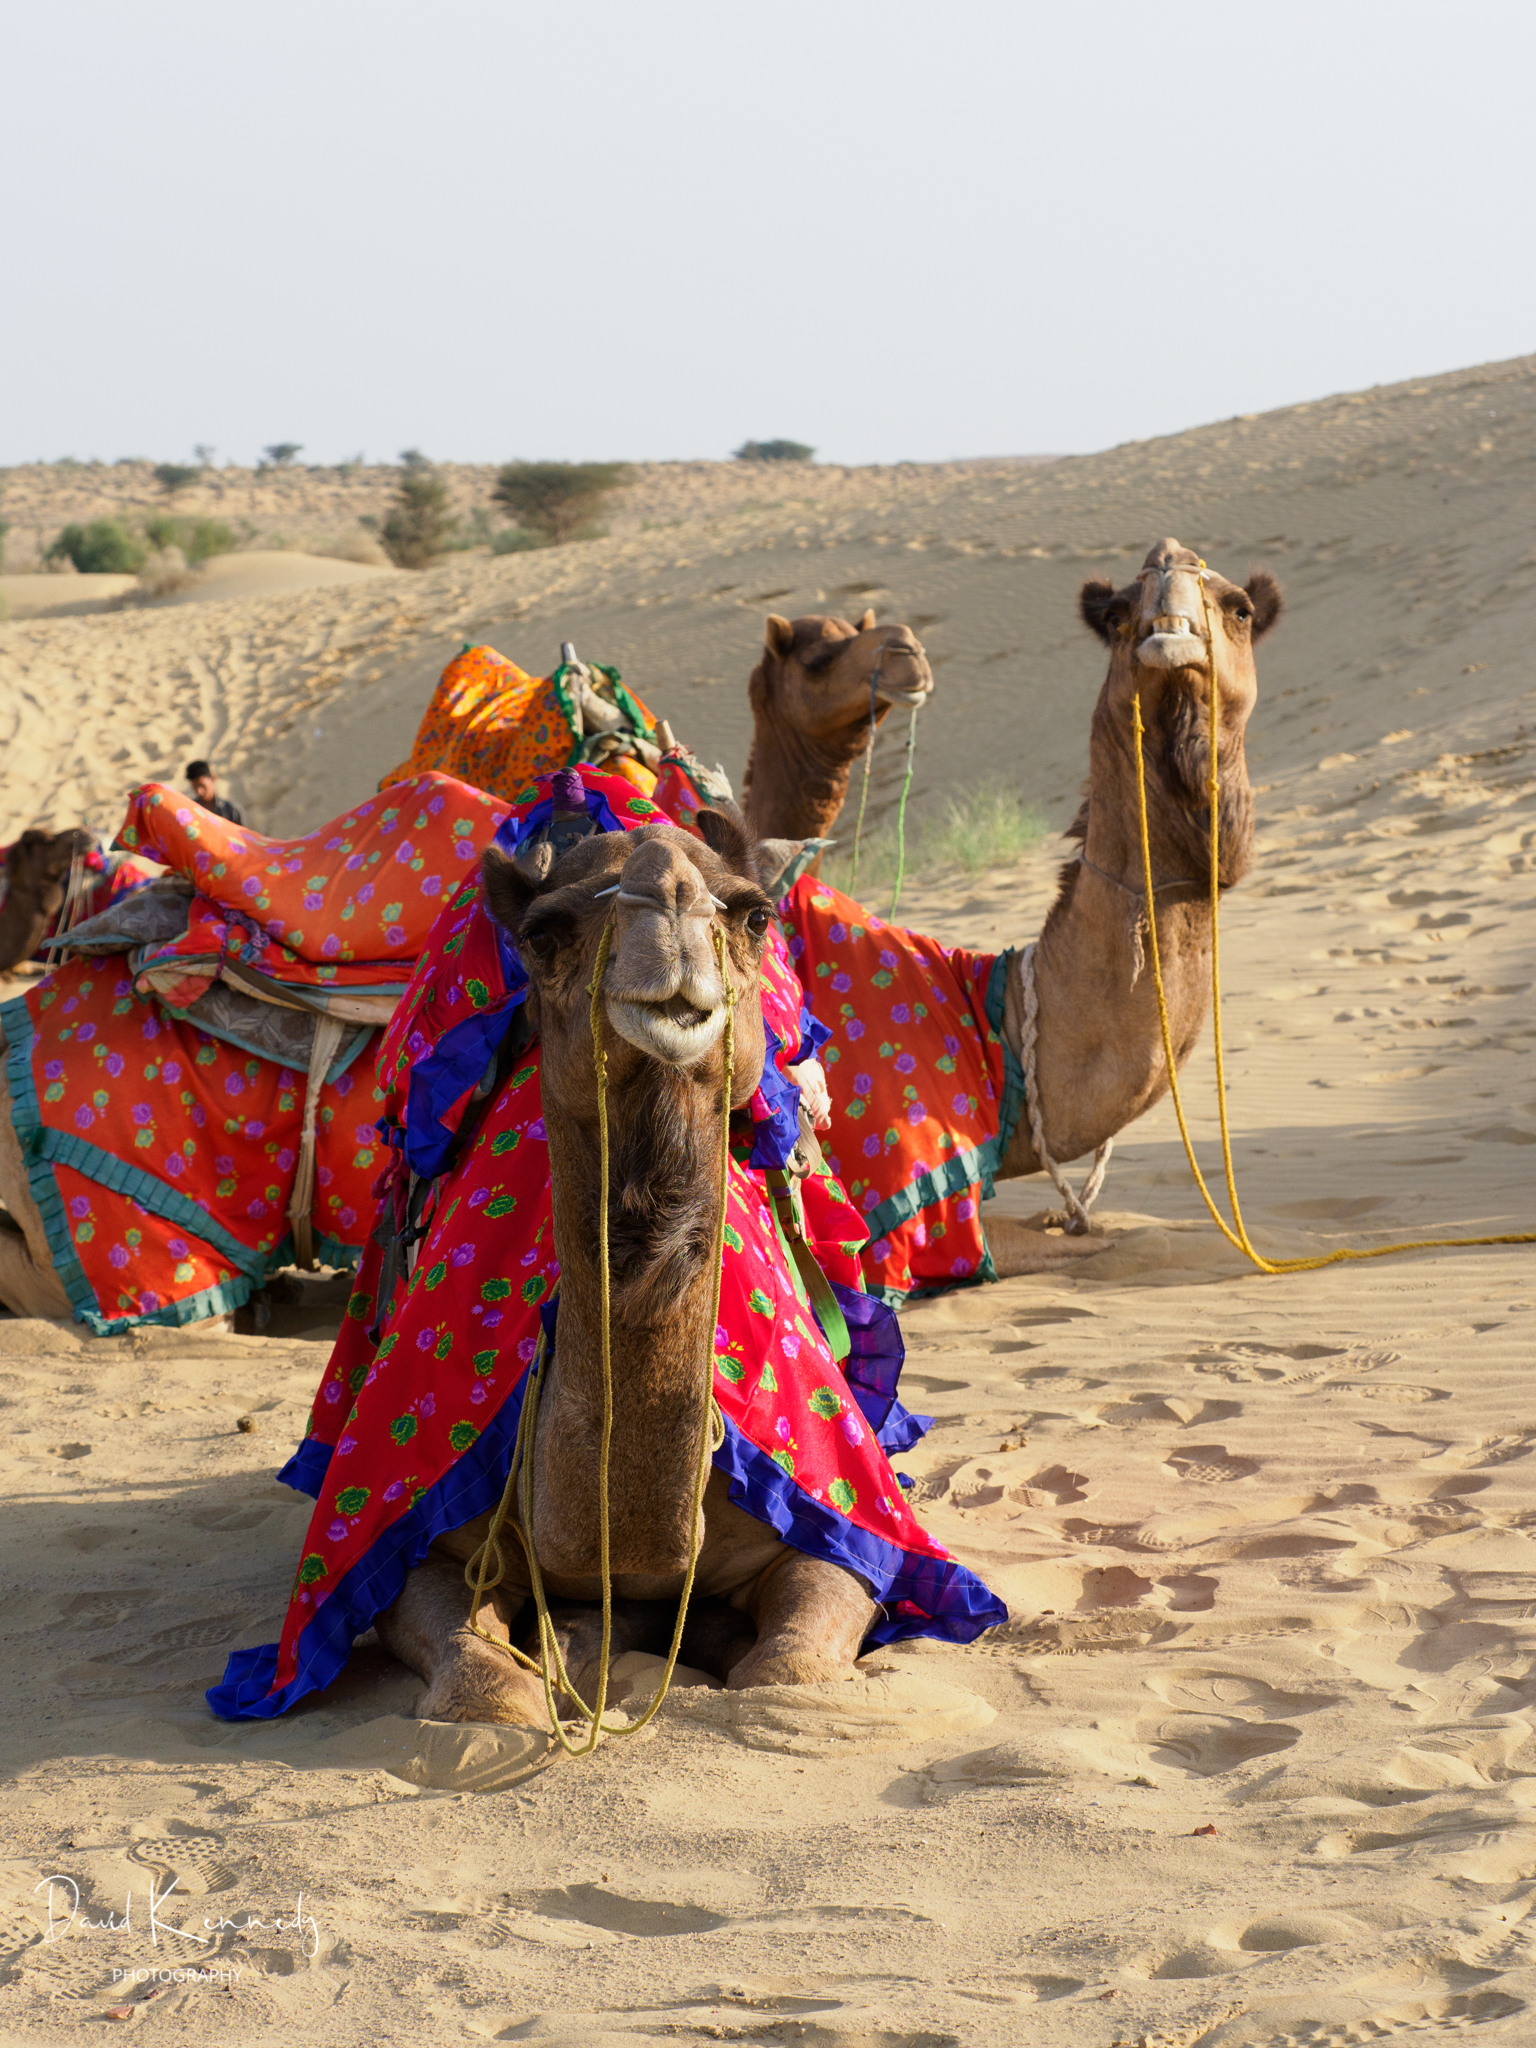 A group of camels have a rest in all their finery in the desert